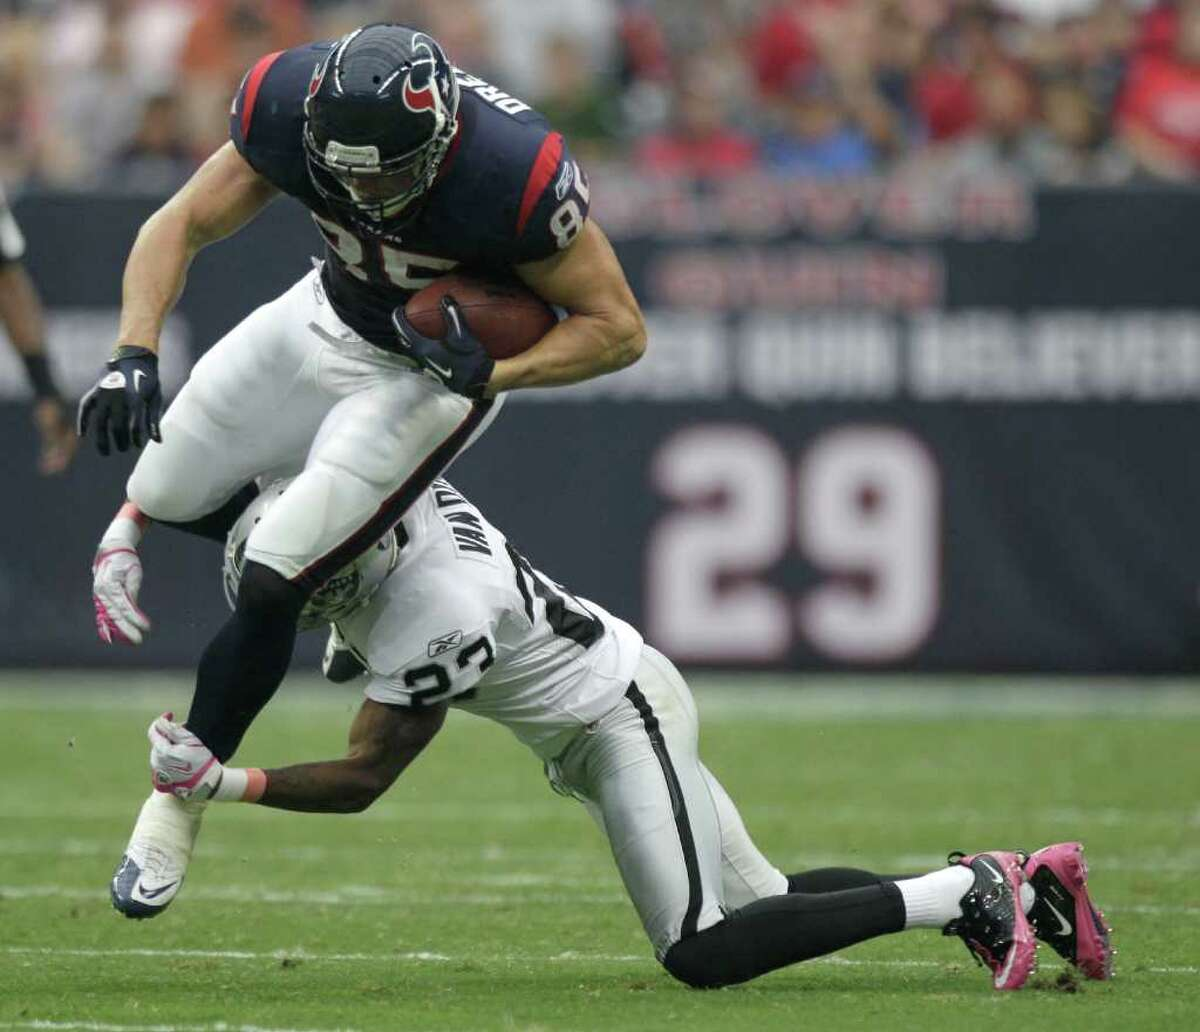 Houston Texans tight end Joel Dreessen (85) is tripped up by Oakland Raiders defensive back DeMarcus Van Dyke (23) after a catch during the first quarter of an NFL football game at Reliant Stadium on Sunday, Oct. 9, 2011, in Houston. ( Brett Coomer / Houston Chronicle )